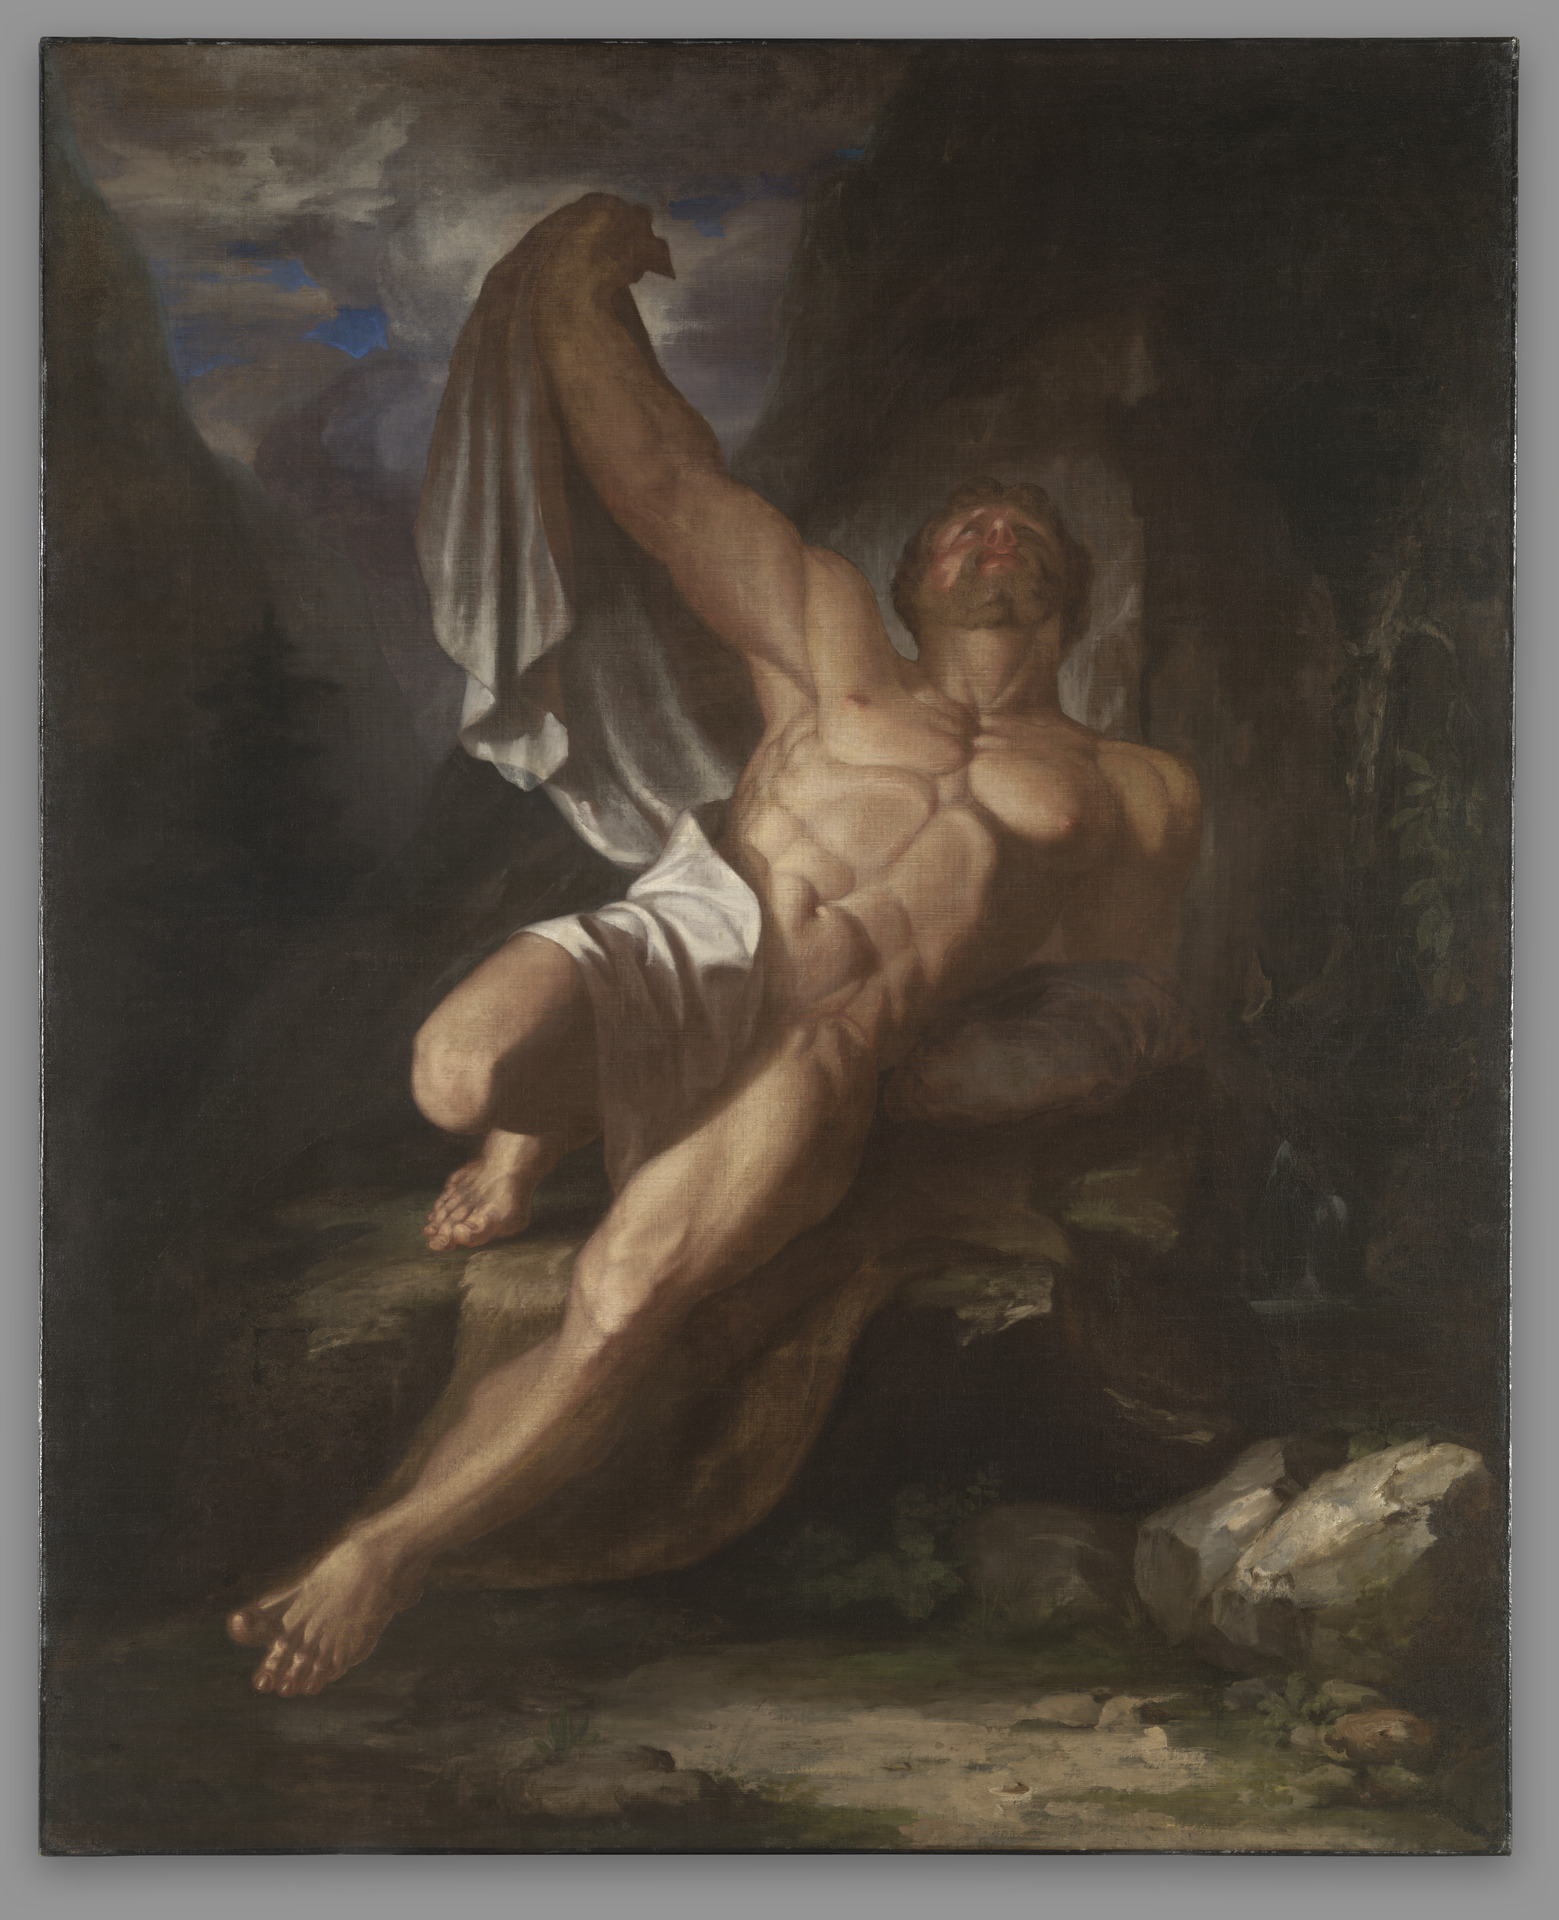 Dying Hercules by Samuel Morse, 1812